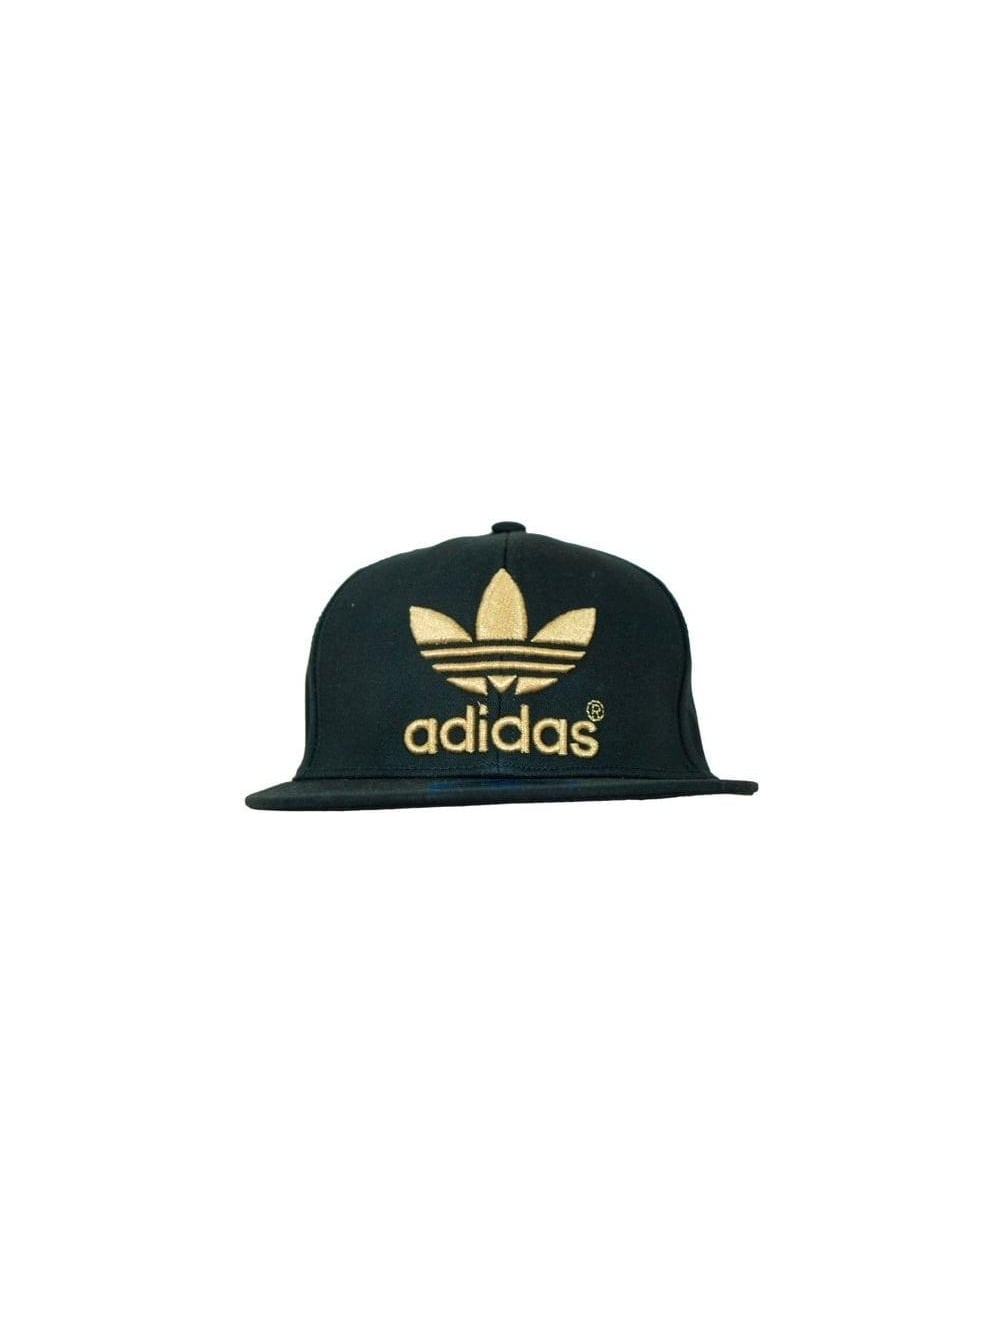 Adidas Originals AC Flatbrim Cap in Black Metal - Northern Threads 6ba486392cc